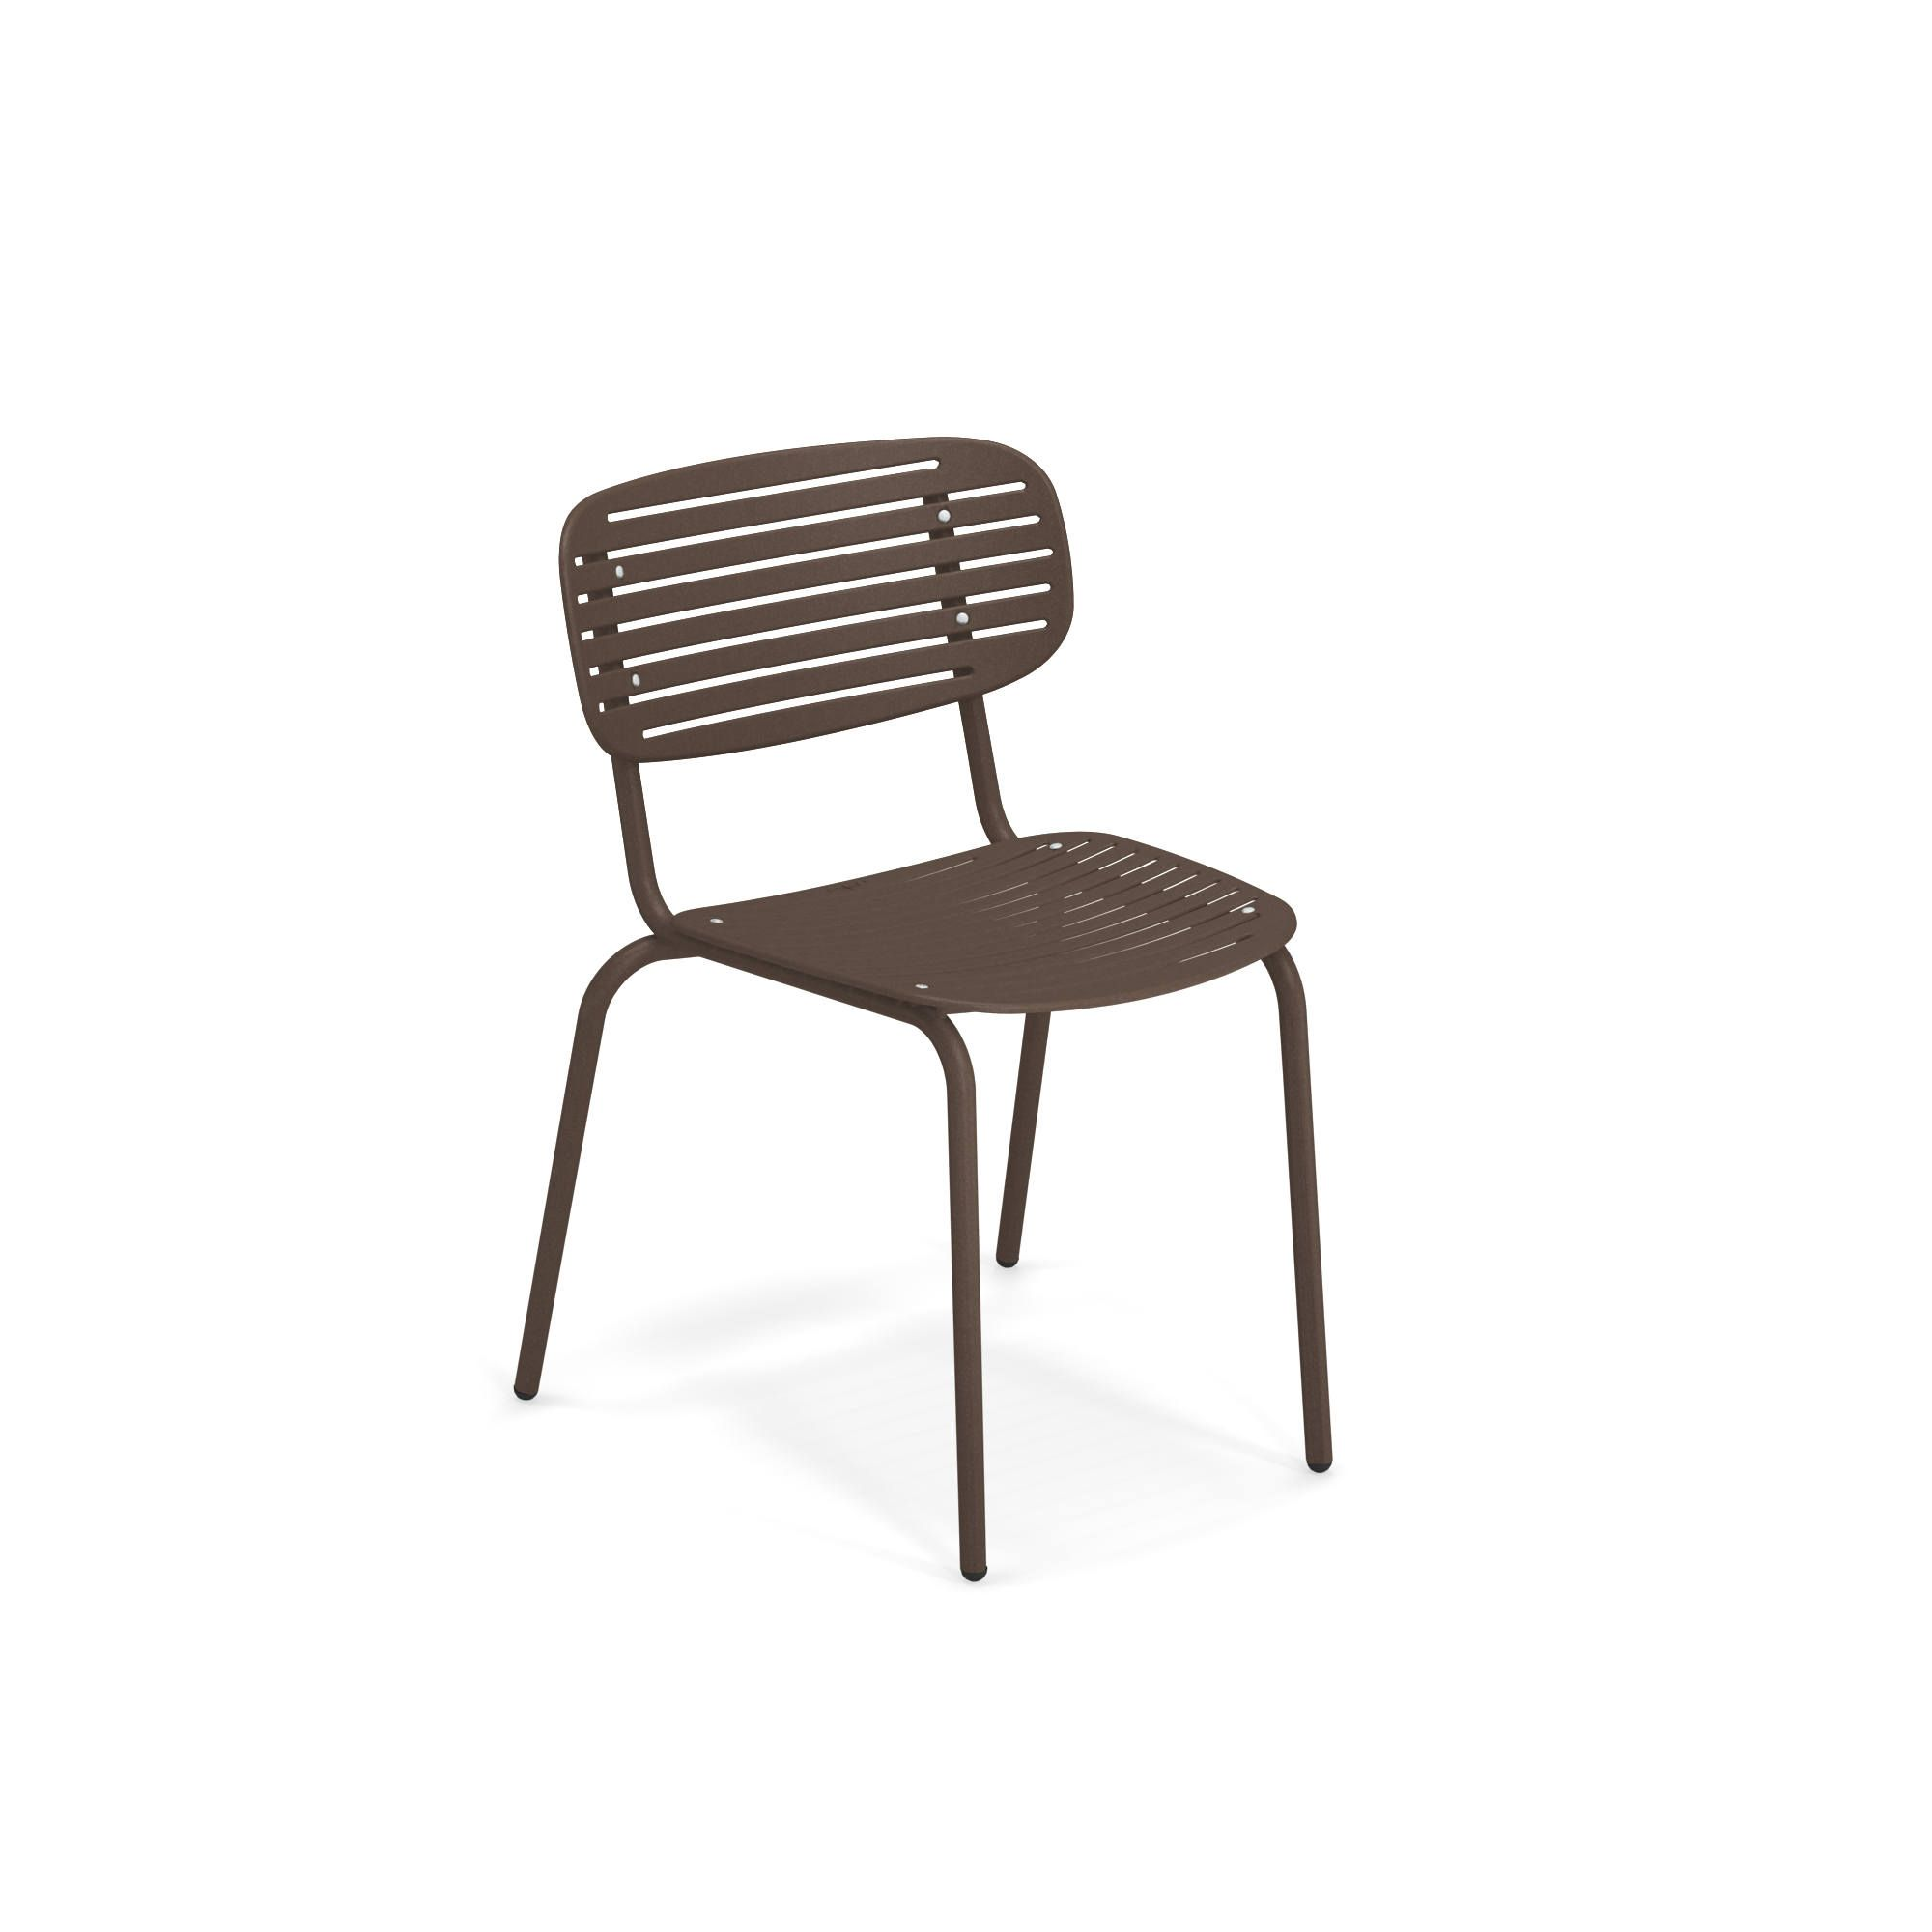 emuamericas, llc 639-41 chair, side, stacking, outdoor